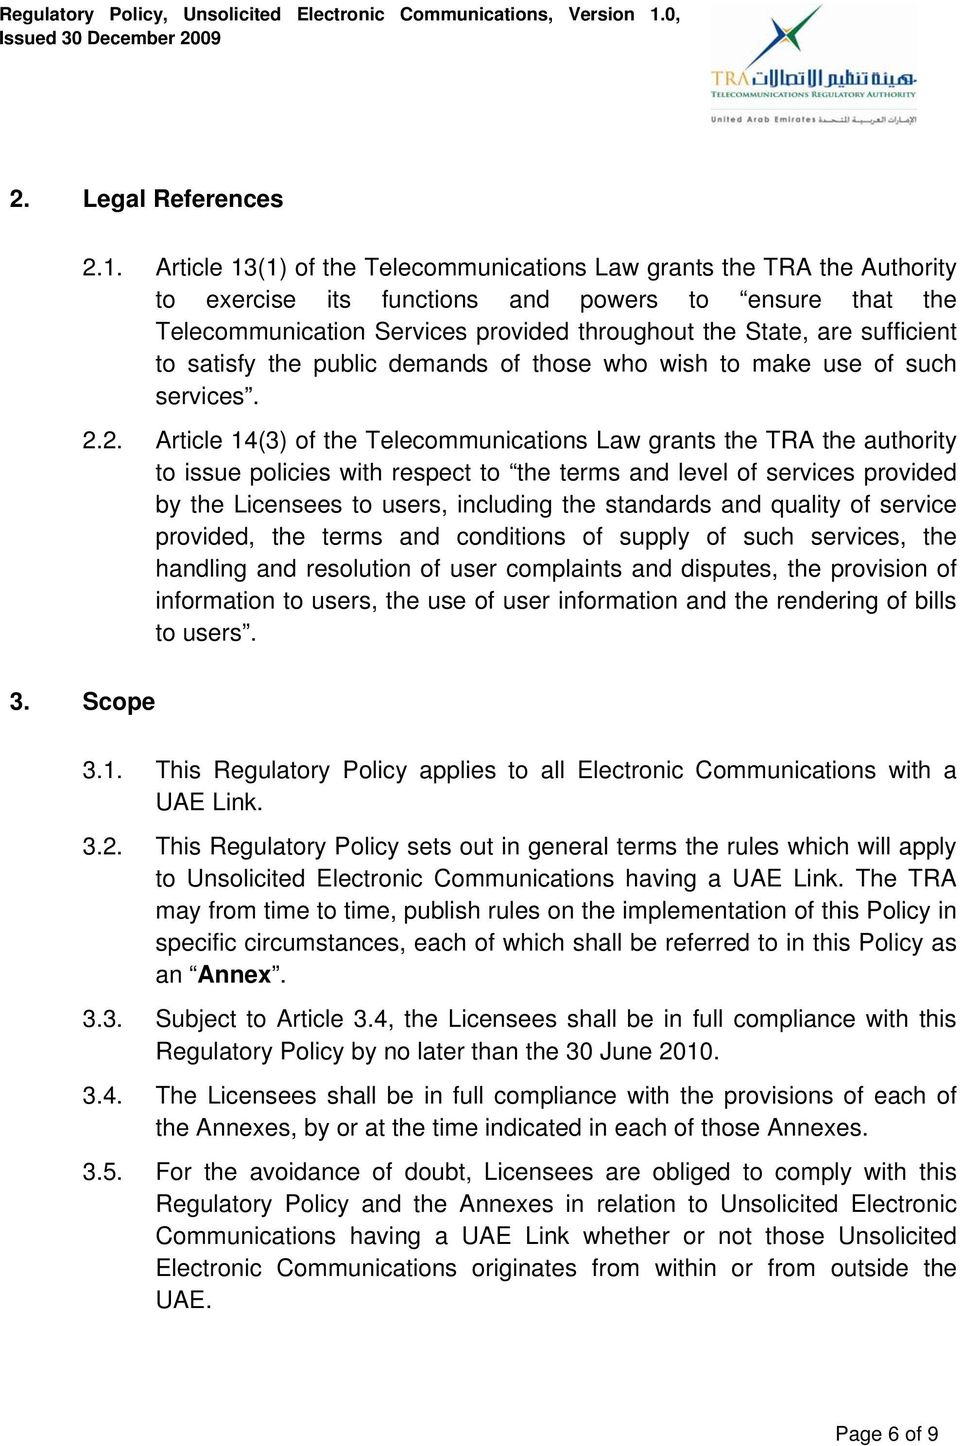 Article 13(1) of the Telecommunications Law grants the TRA the Authority to exercise its functions and powers to ensure that the Telecommunication Services provided throughout the State, are